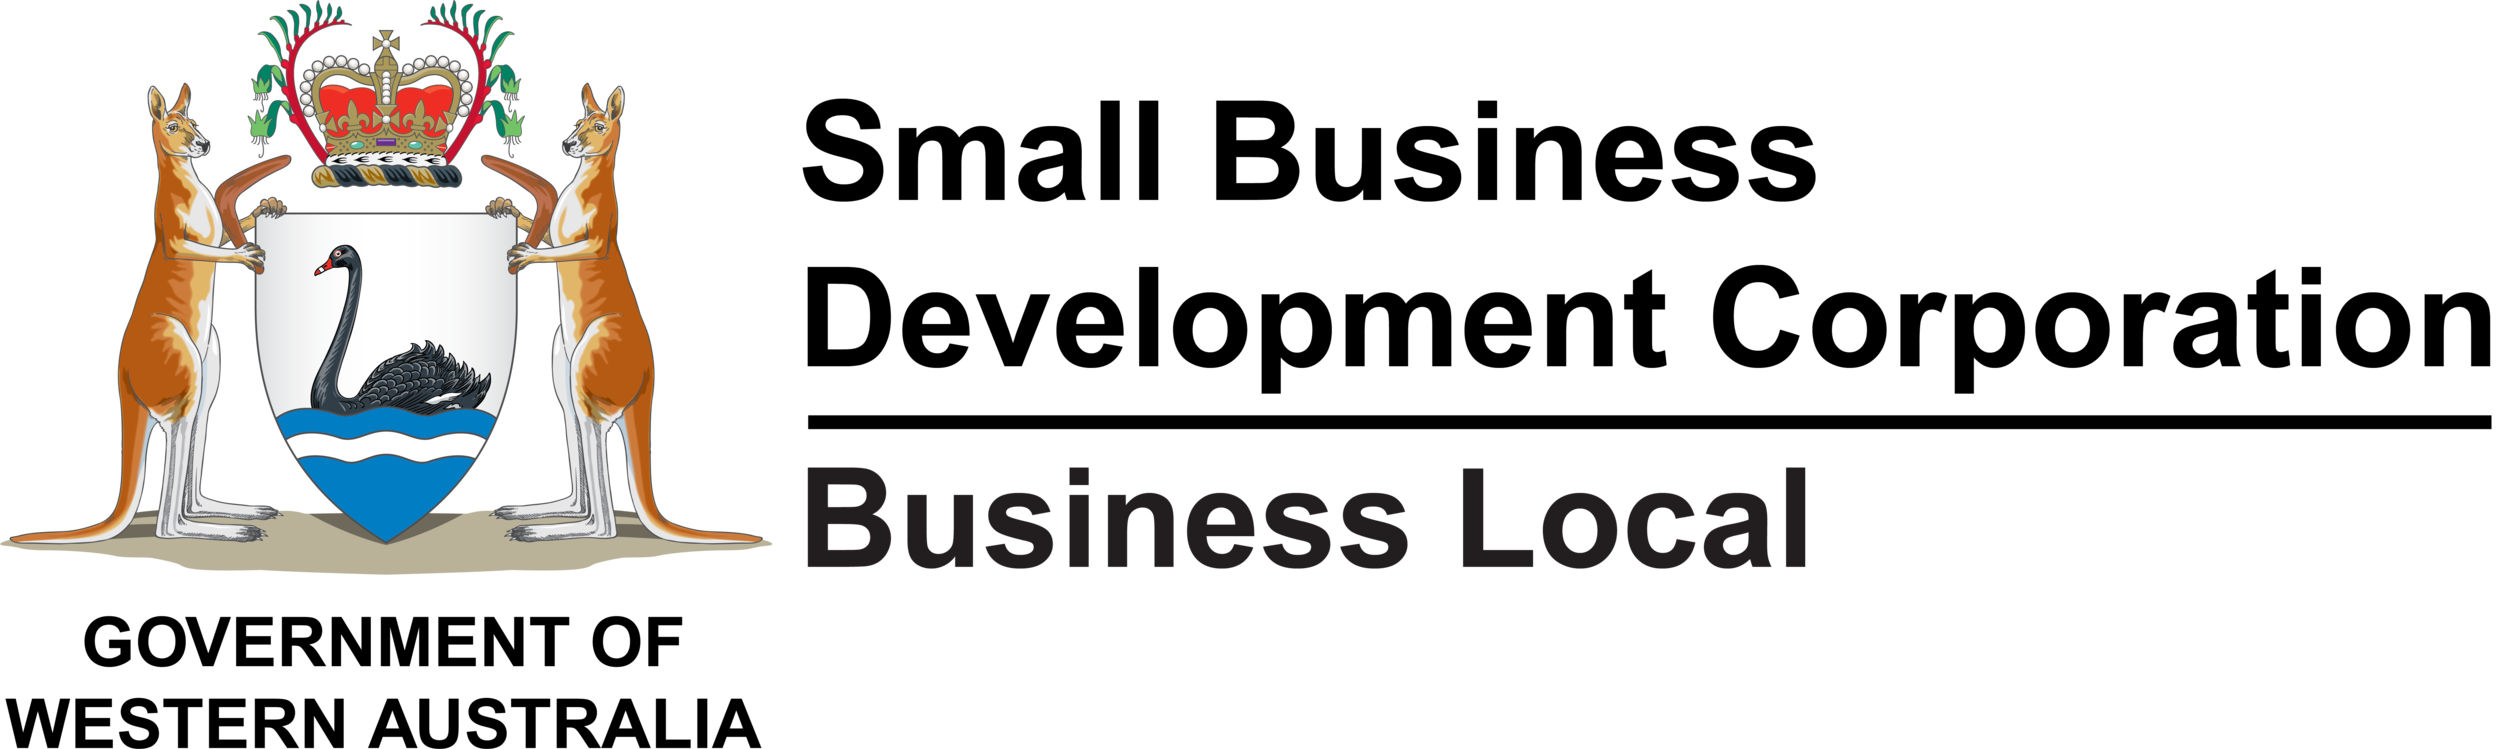 SBCD-Business-Local-Colour-21.02.2018-PNG.png